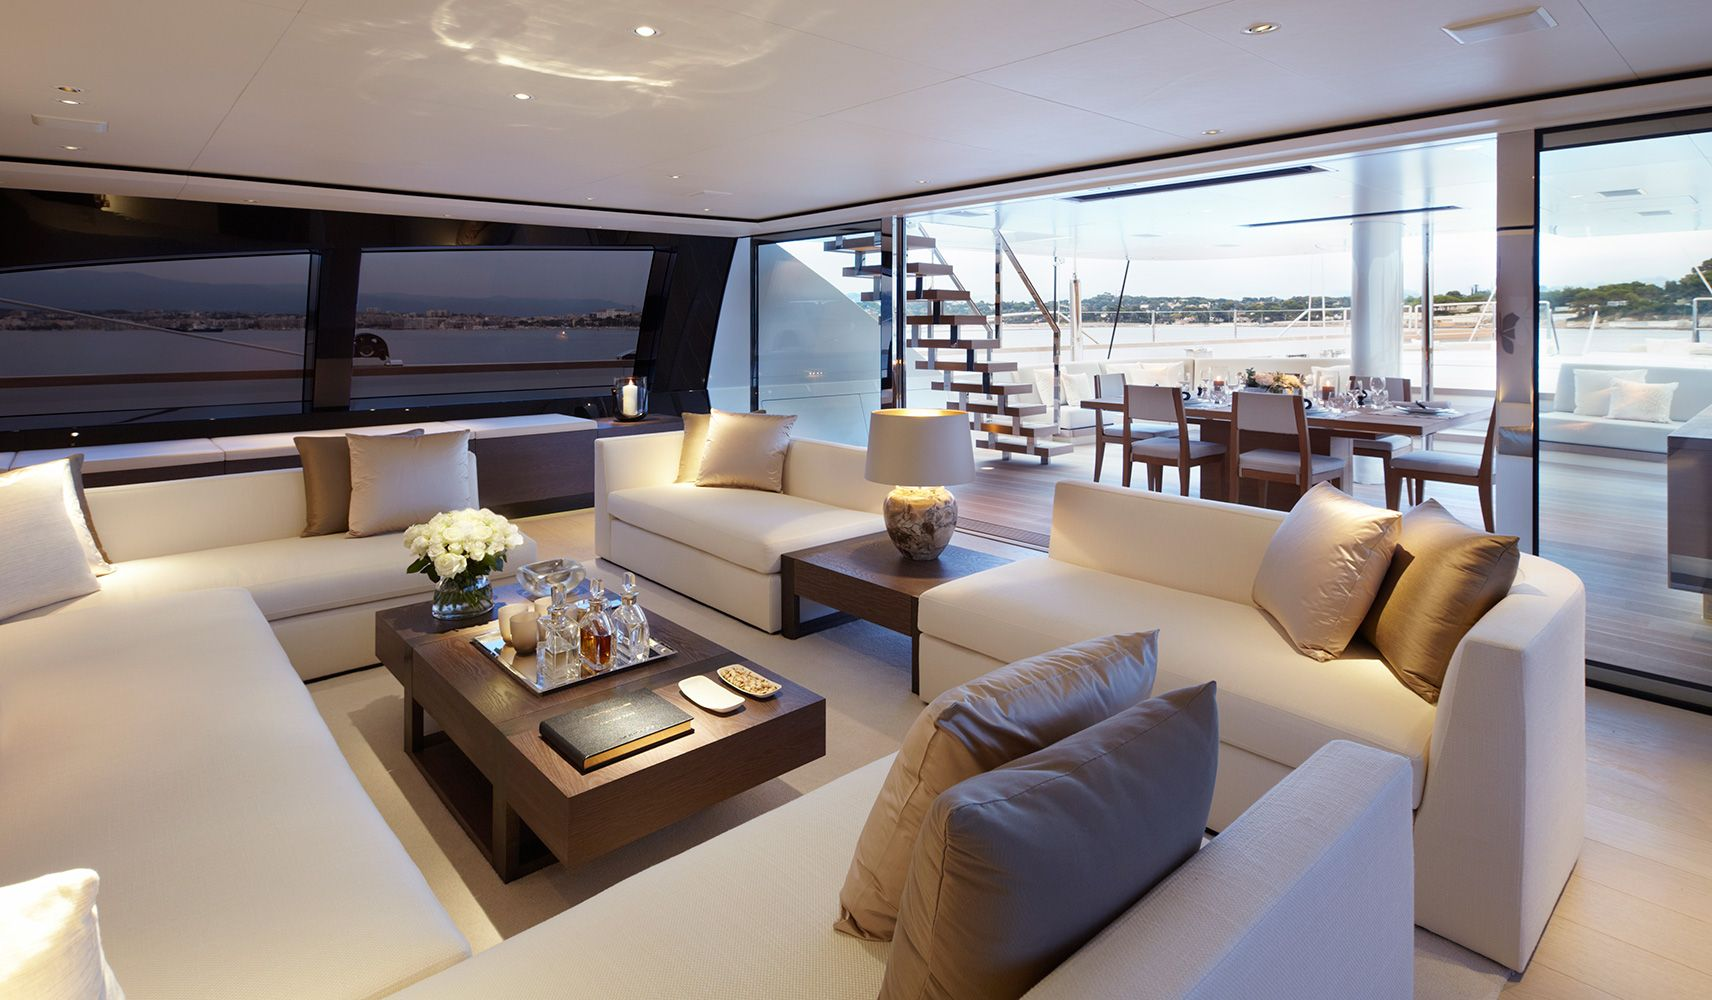 Interior design ∙ yachts ∙ twizzle sy todhunter earletodhunter earle